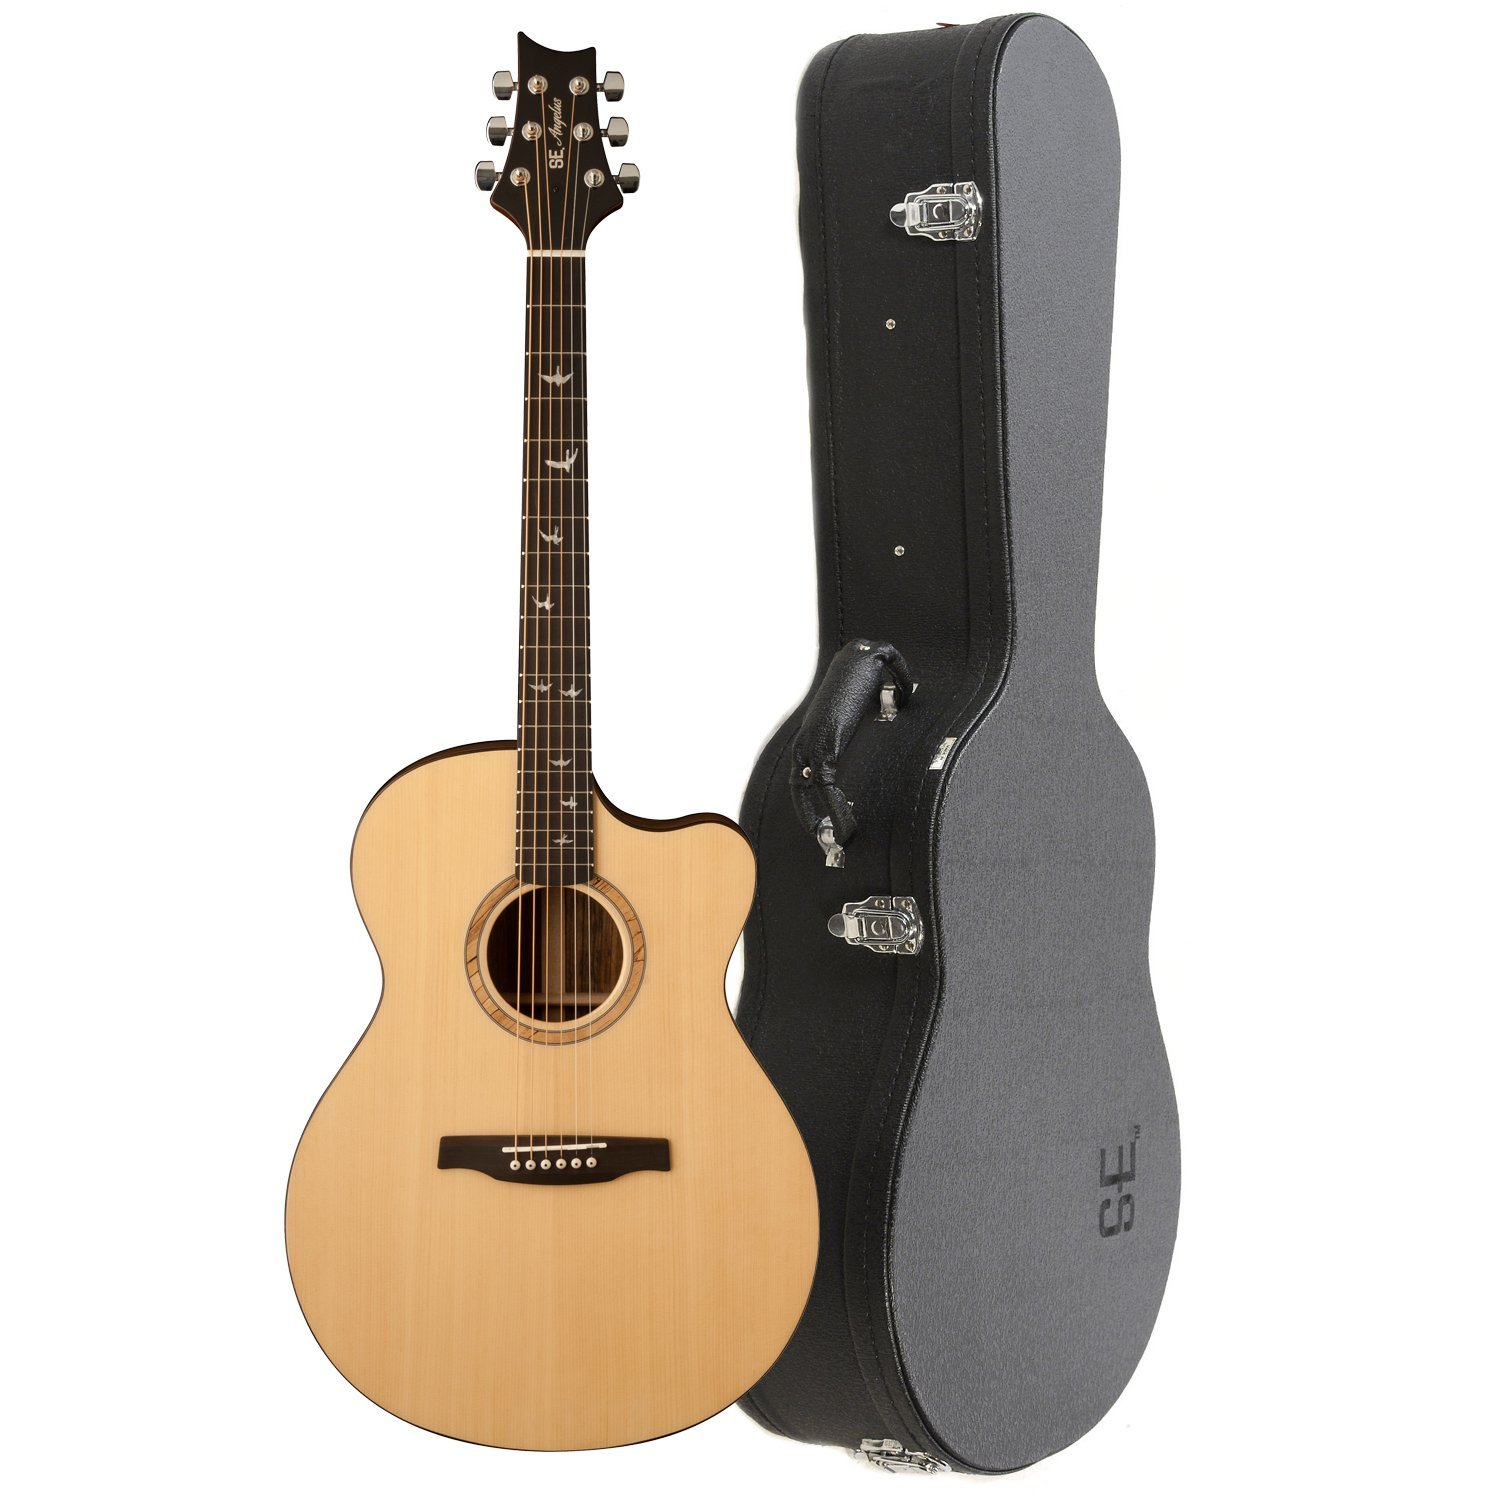 Top 5 Best Acoustic Guitar under 1000 Dollars 9